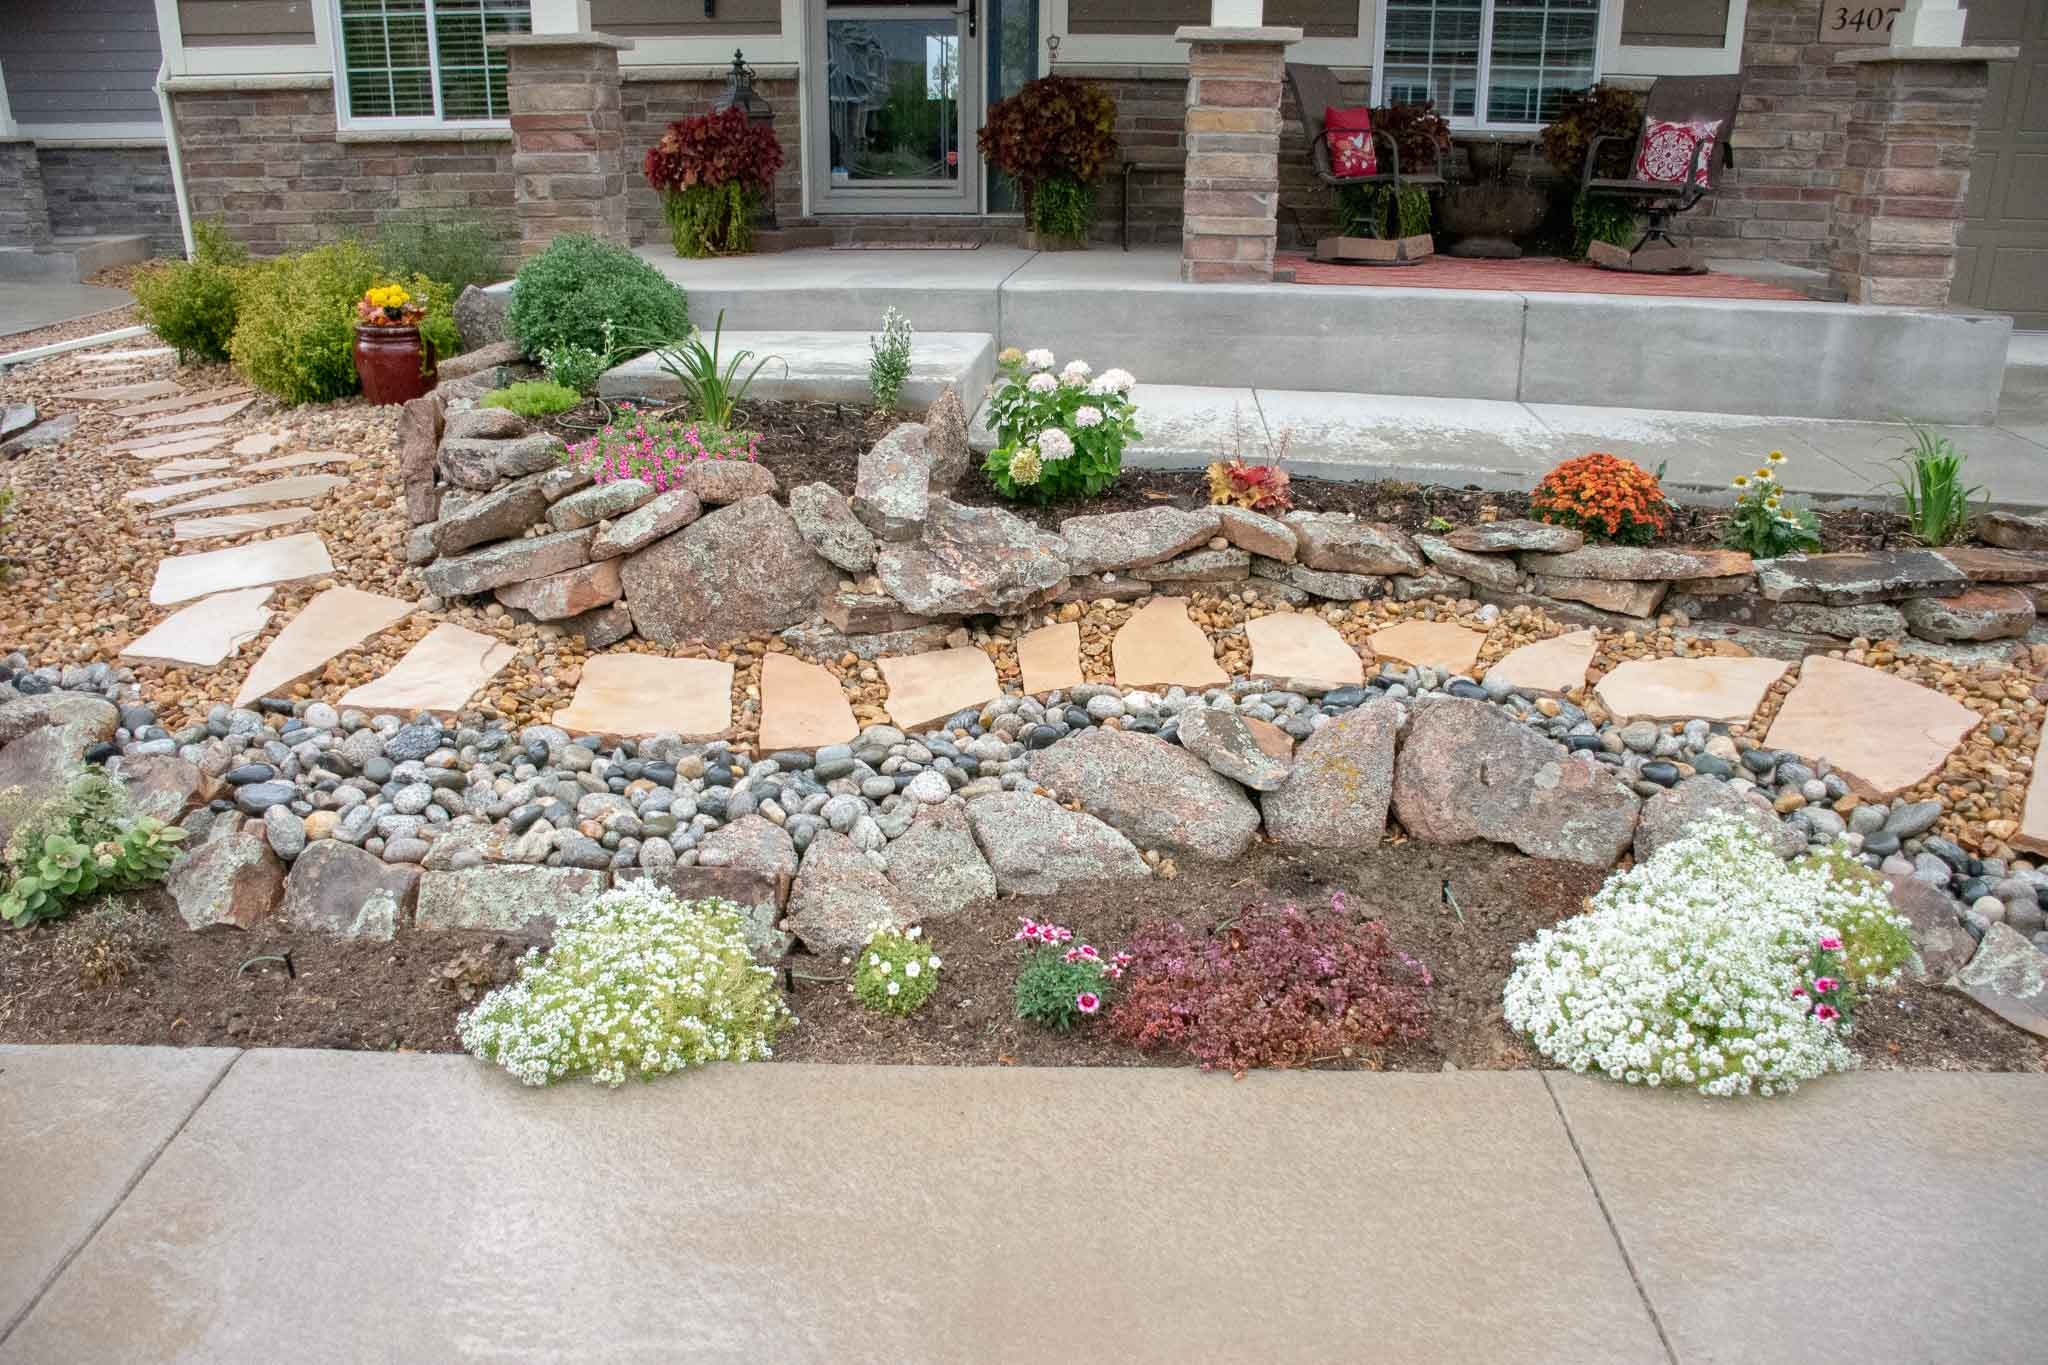 Front yard xeriscape that Tri City designed and completed in Loveland, CO 2019  Cobble stone dry river bed and flagstone pathway.